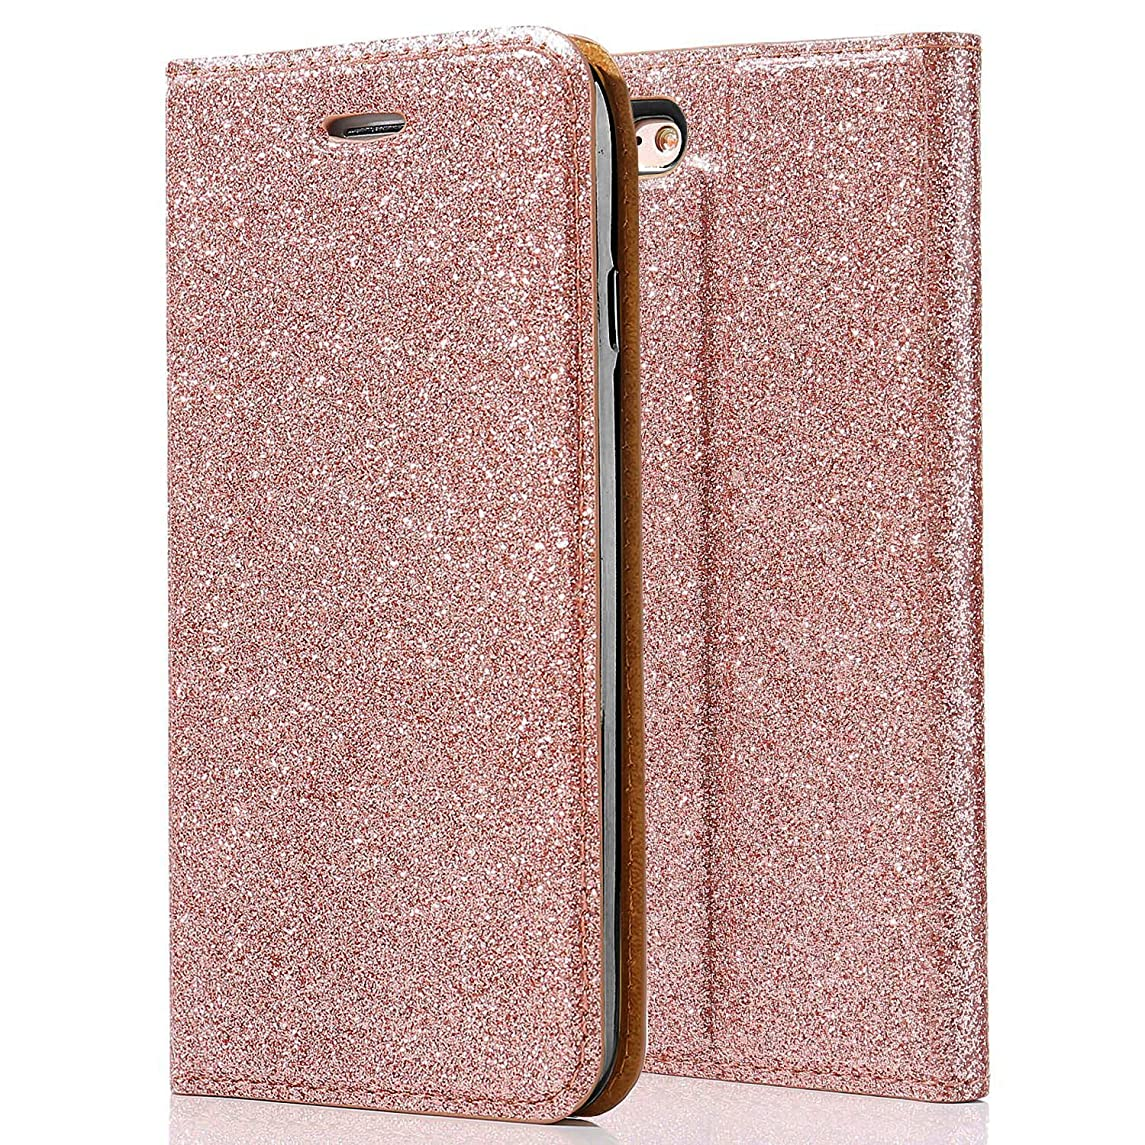 for iPhone 5S/SE/5 Case,iPhone SE Bling Case L-FADNUT Luxury Bling Glitter Flip Case PU Leather Magnetic Wallet Cover Inner Soft TPU Silicone Case with Card Slots and Stand Protective Cover Rose Gold